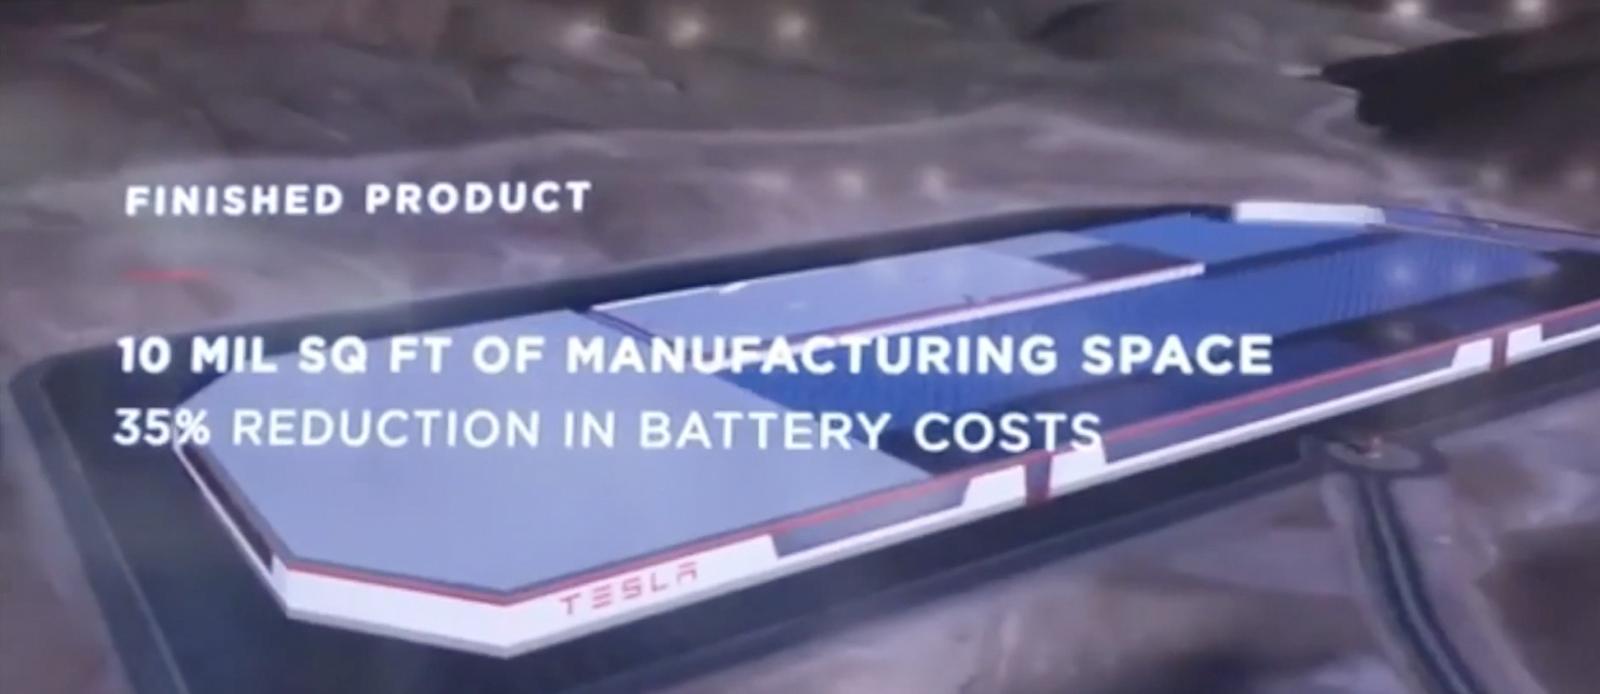 Recent Studies Show That Average Electric Vehicle Battery